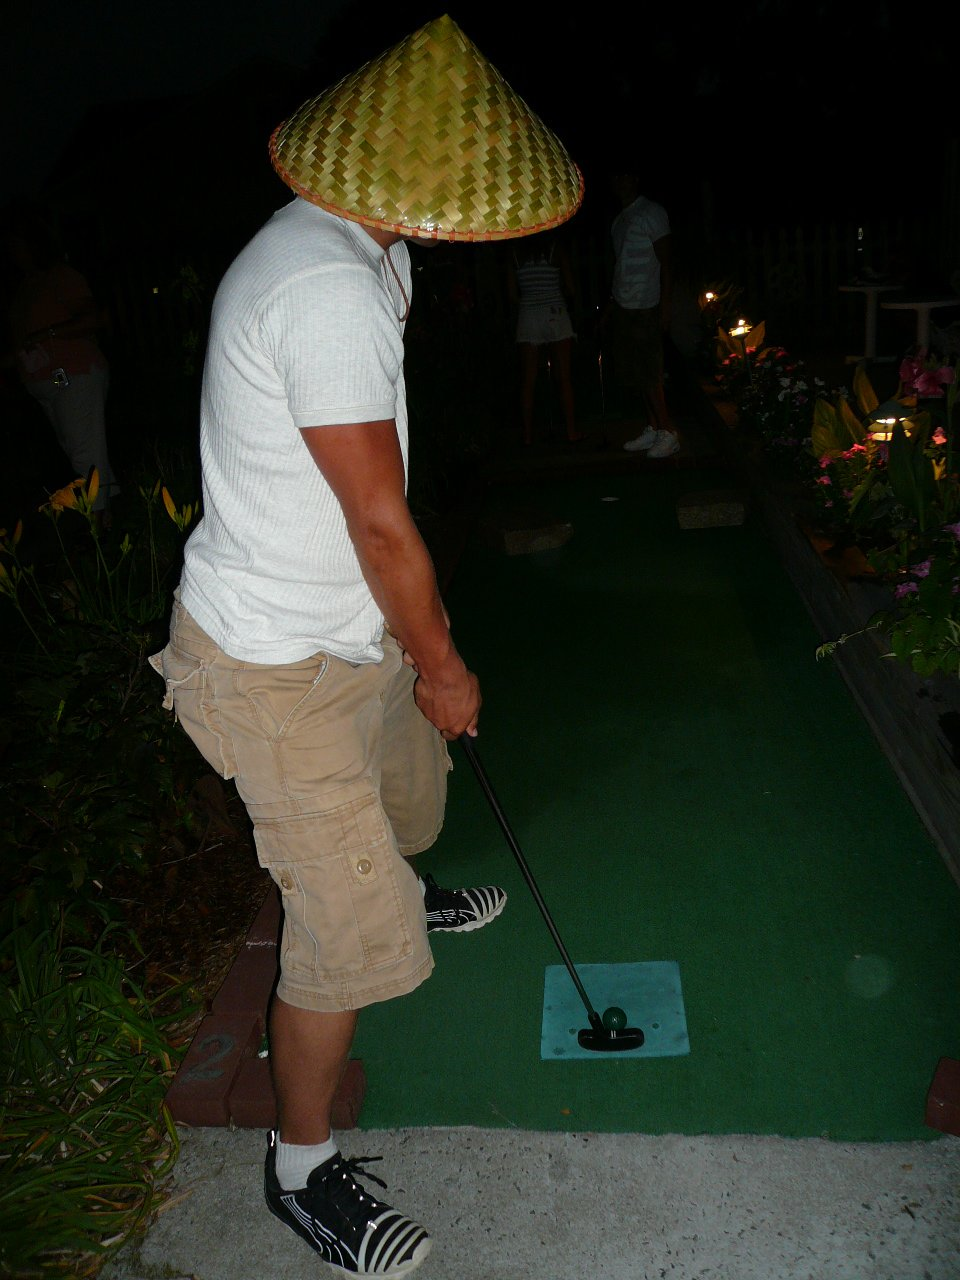 Vietnamese mini golf